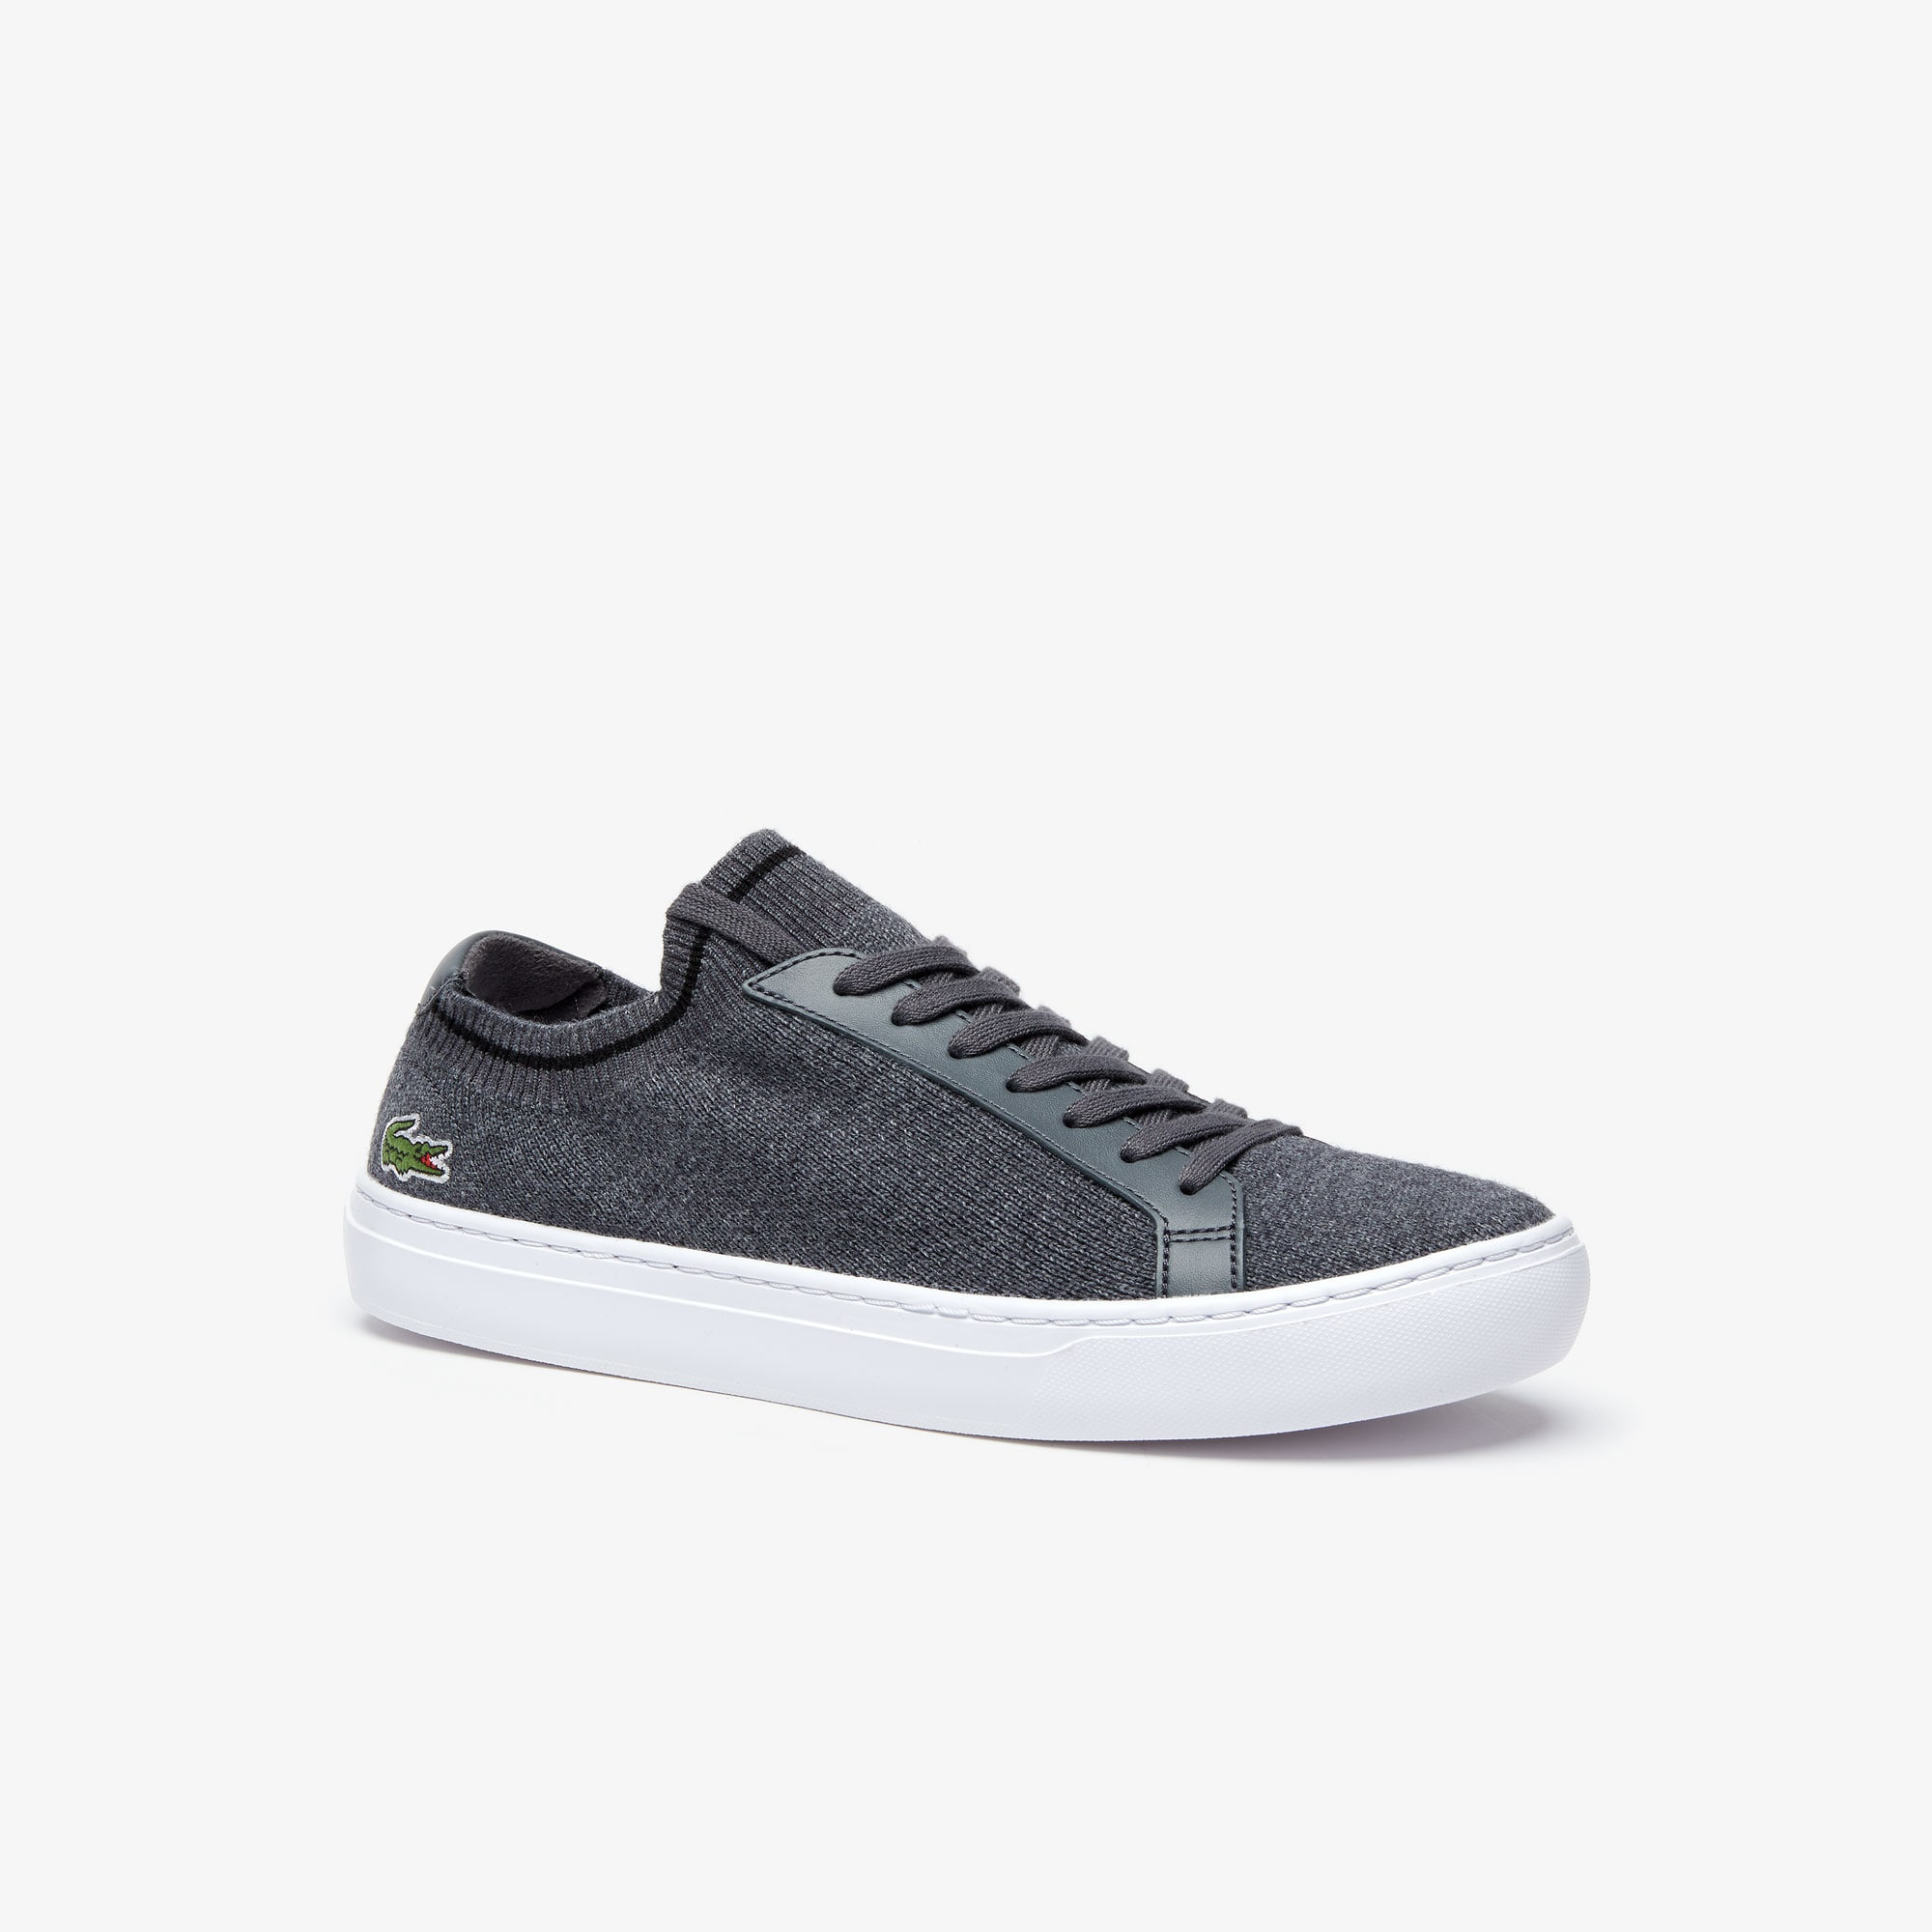 d4f86d4db12 Lacoste shoes for men: Sneakers, Trainers, Boots | LACOSTE